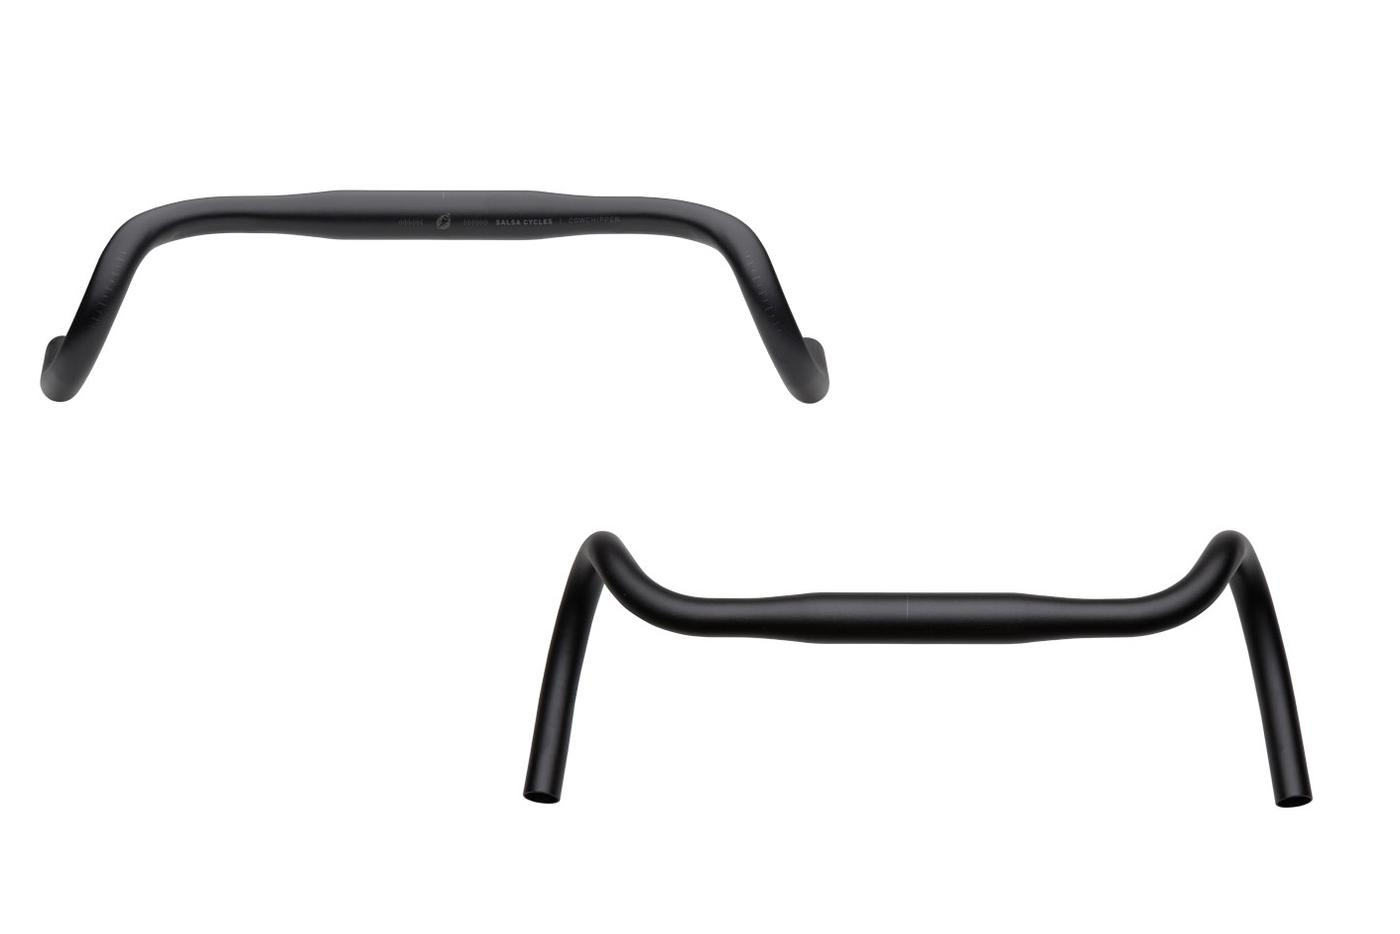 Wide is Better: Salsa Cowchipper Bars Now Come in 52cm Wide